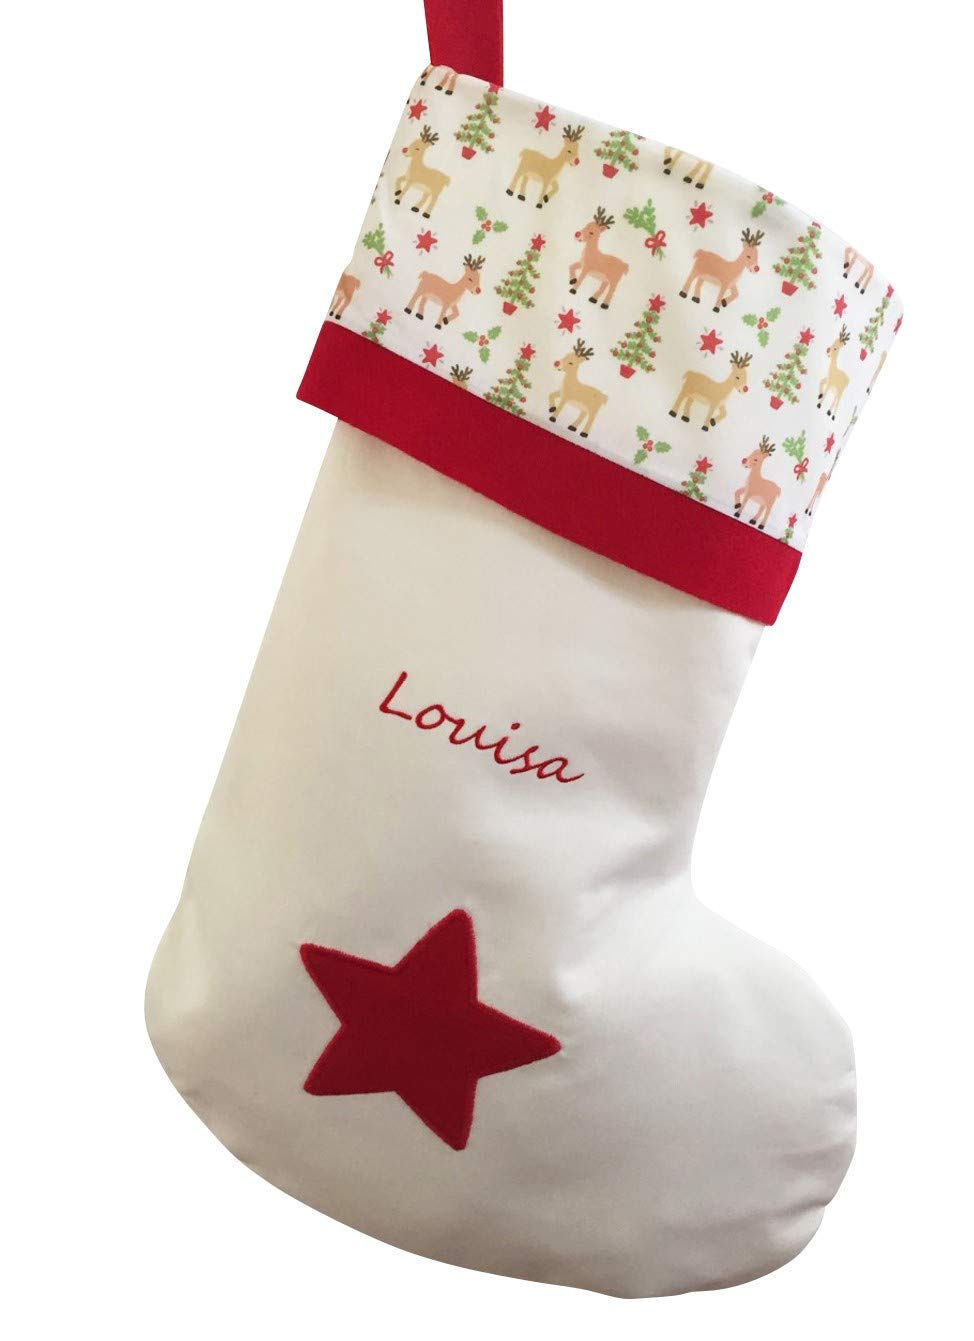 Alpaphet Barn Personalised Christmas Stocking | Xmas Reindeer Design | Kids Babys First Adults Him Her | Handmade in the UK | Embroidered Name | Large Size 50cm Tall Alphabet Barn